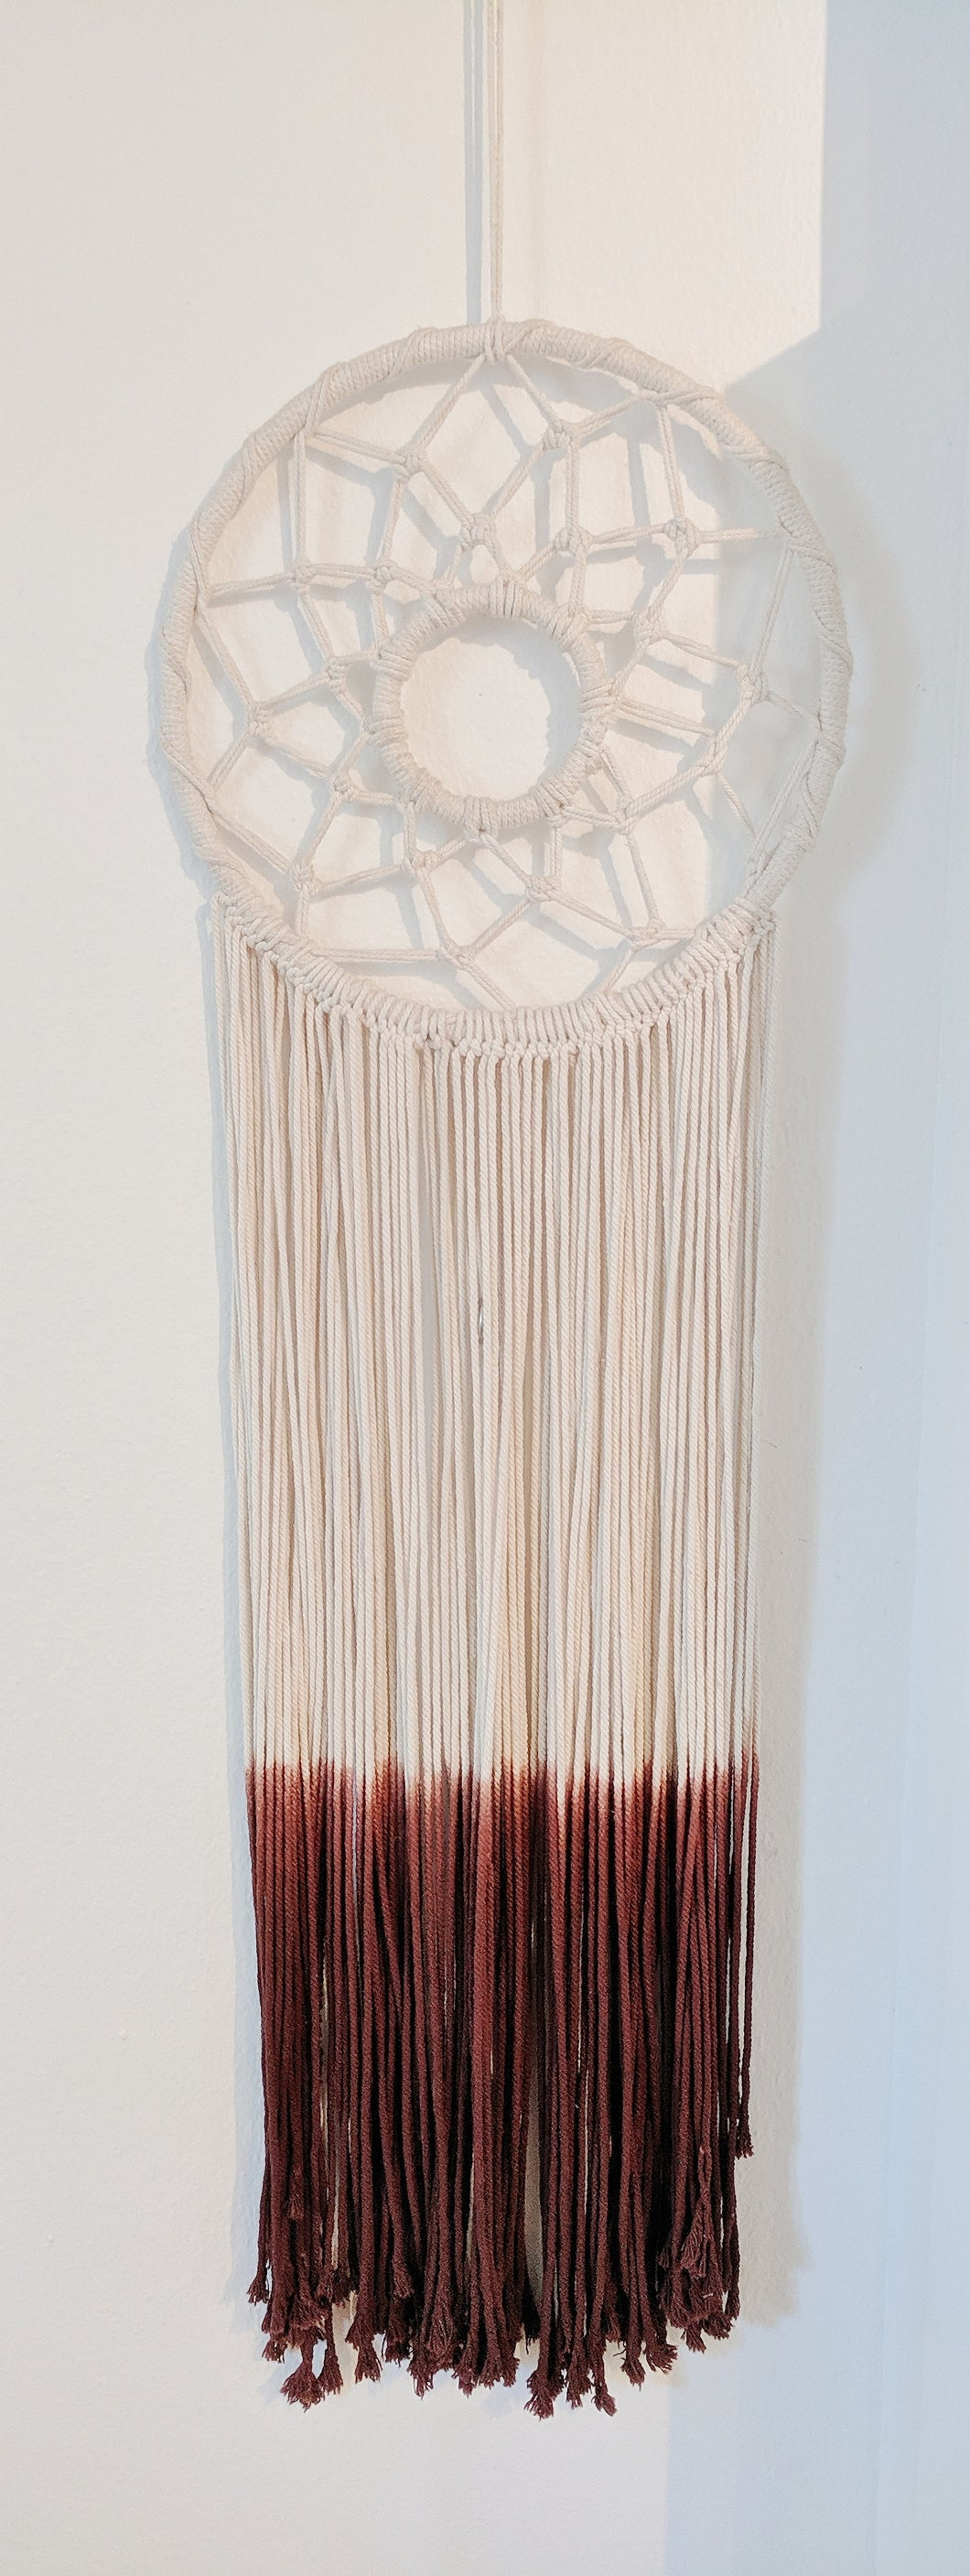 Soul of the Party - Macrame Dream Catcher